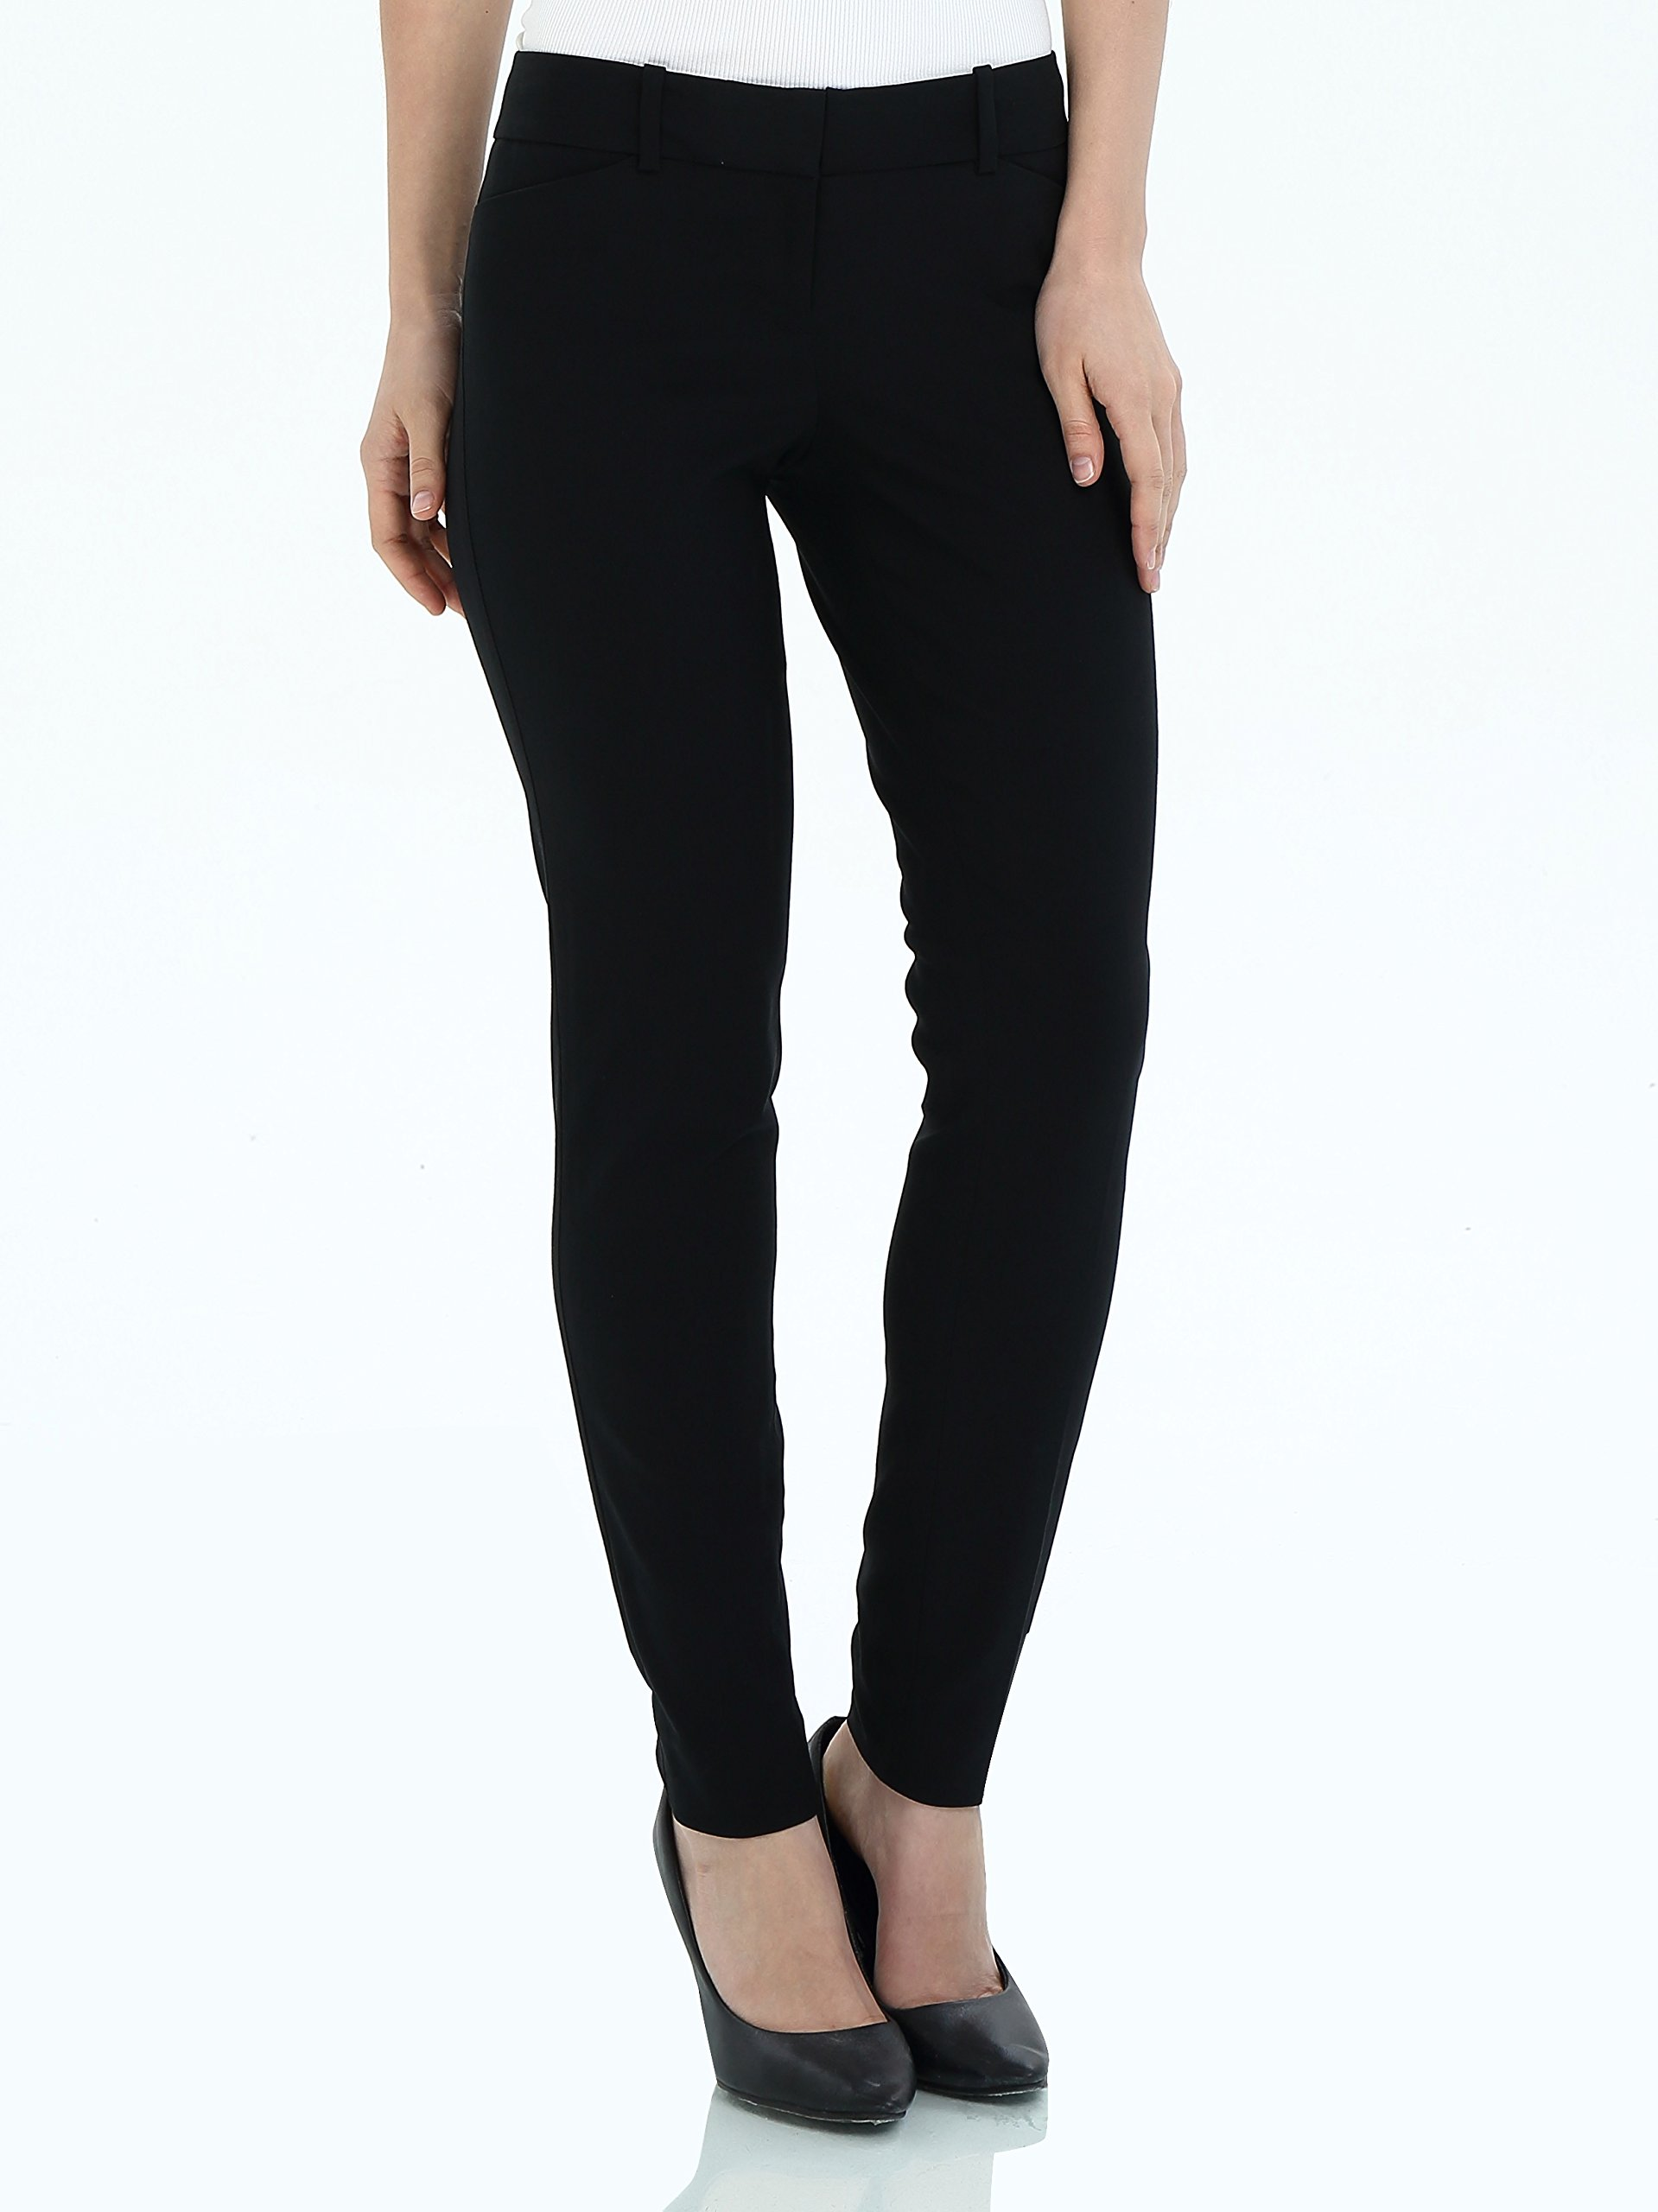 YTUIEKY Womens Dress Pants,Casual Straight Fit Trouser Career Straight Leg Pant,Slim Fit Super Stretch Comfy Skinny Pants (0, Black)